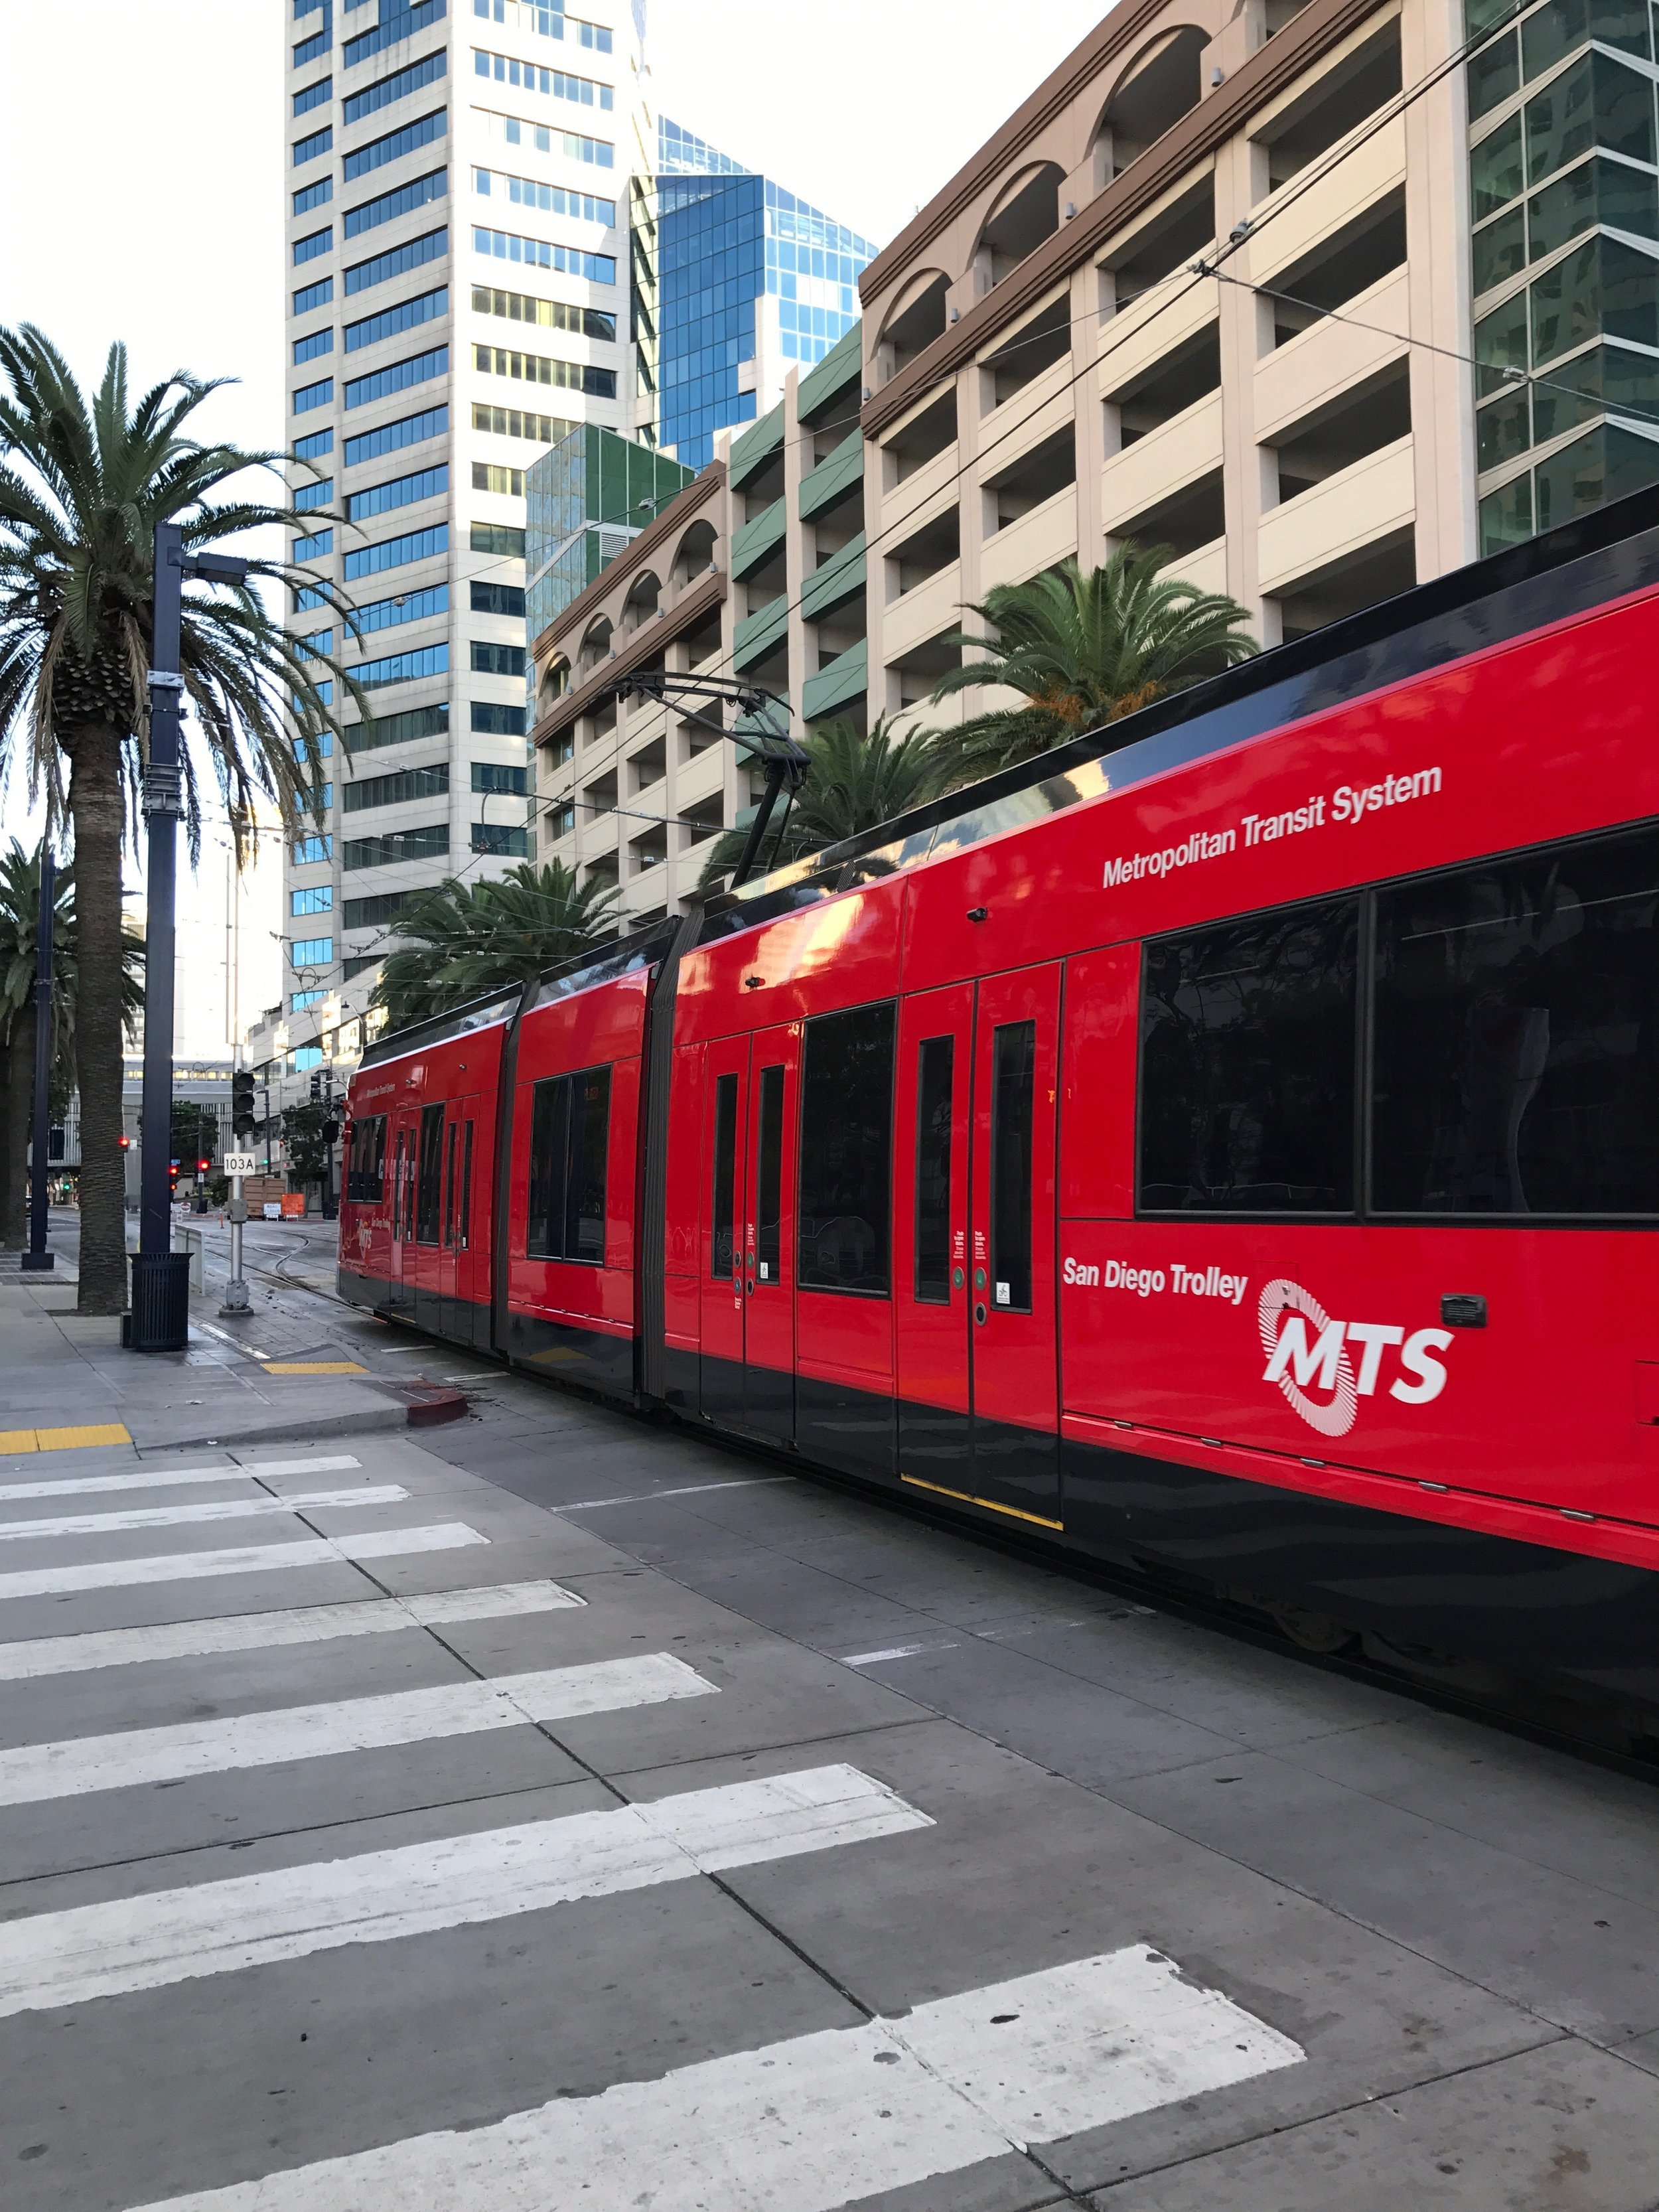 San Diego trolley in December. Photo: Don Day/BoiseDev.com